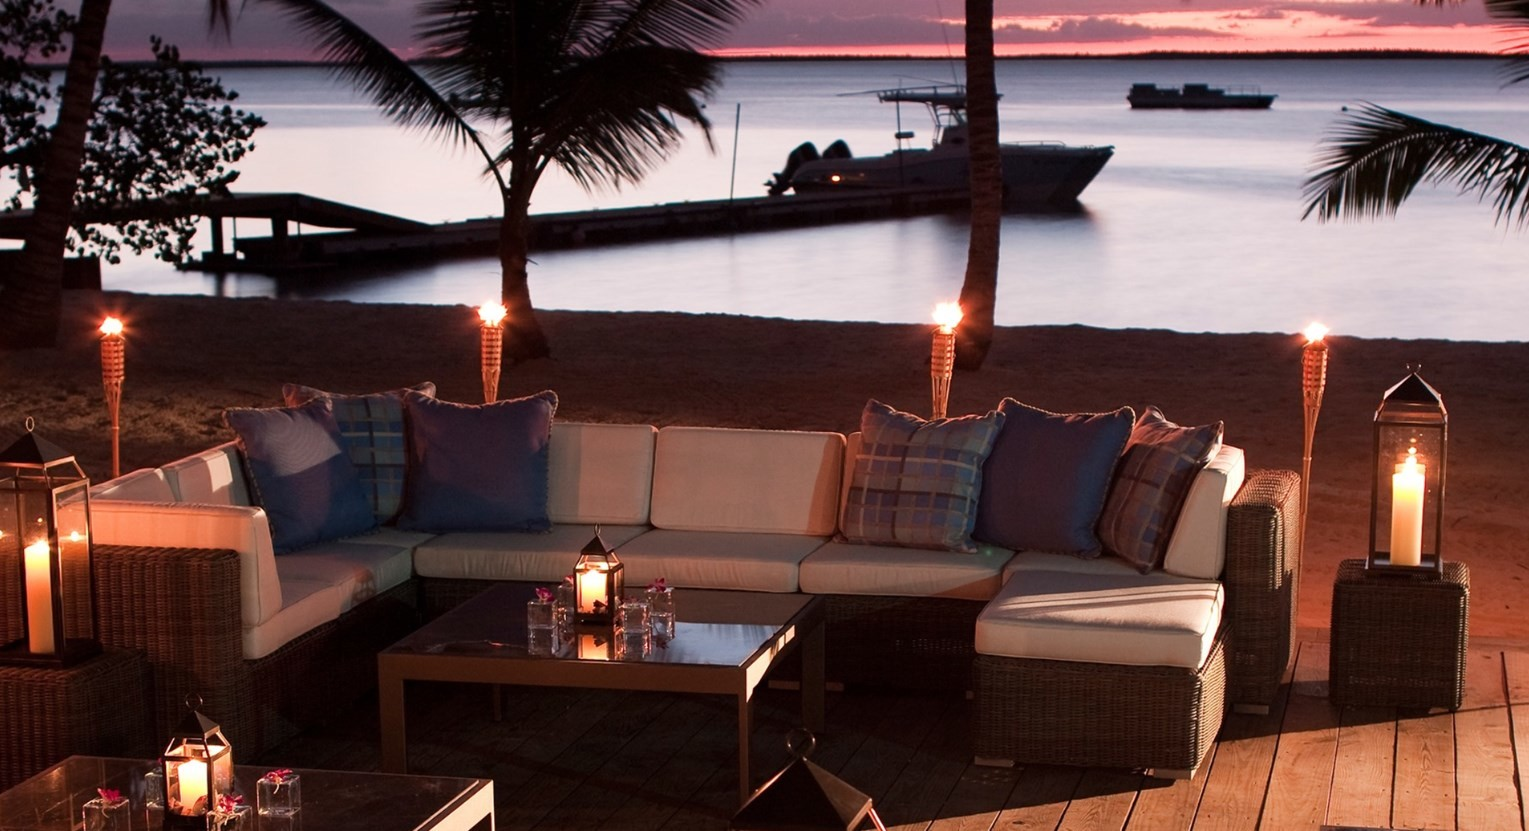 news-main-the-bahamas-has-its-first-relais-chateaux-hotel.1594826023.jpg